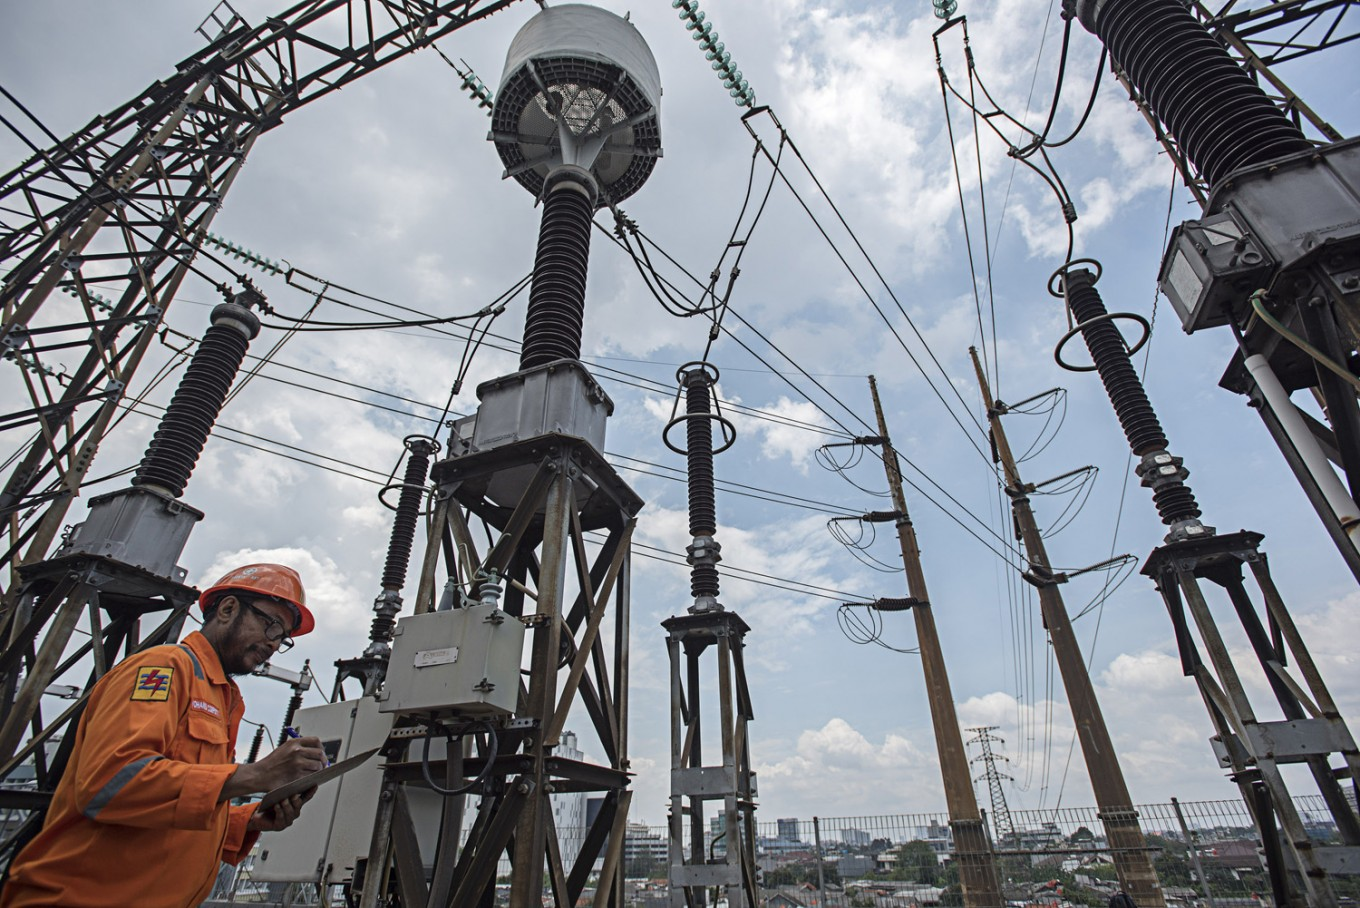 Indonesia only needs 15,000 MW extra electricity by 2019: Minister